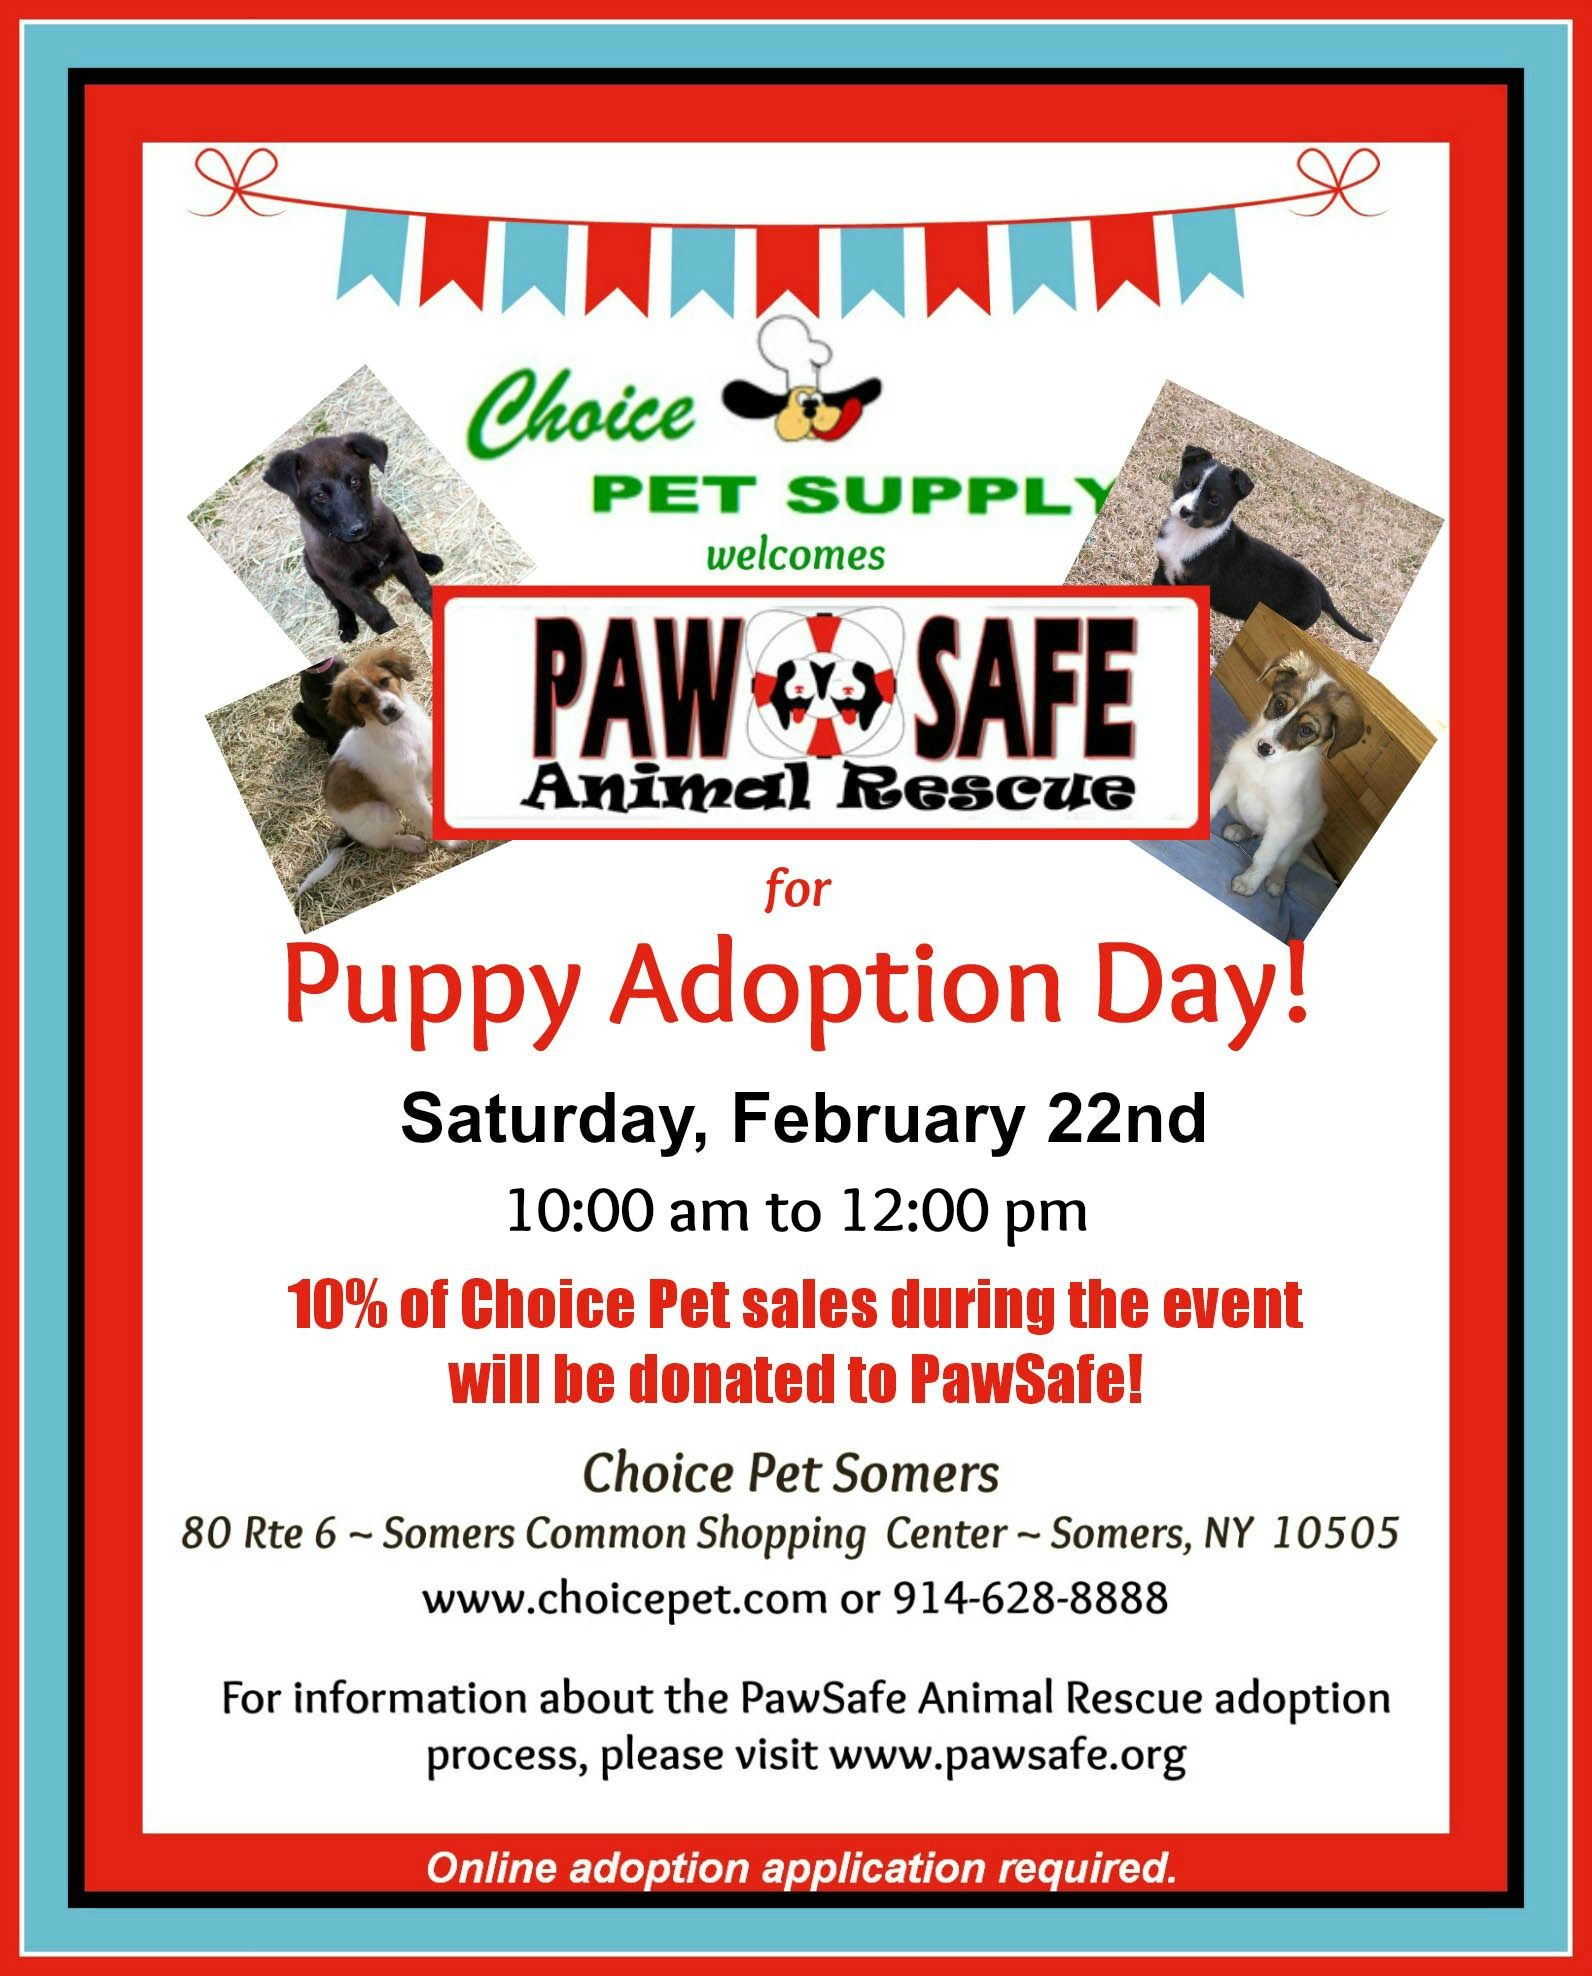 We Love Pawsafe With Images Puppy Adoption Adoption Day Animal Rescue